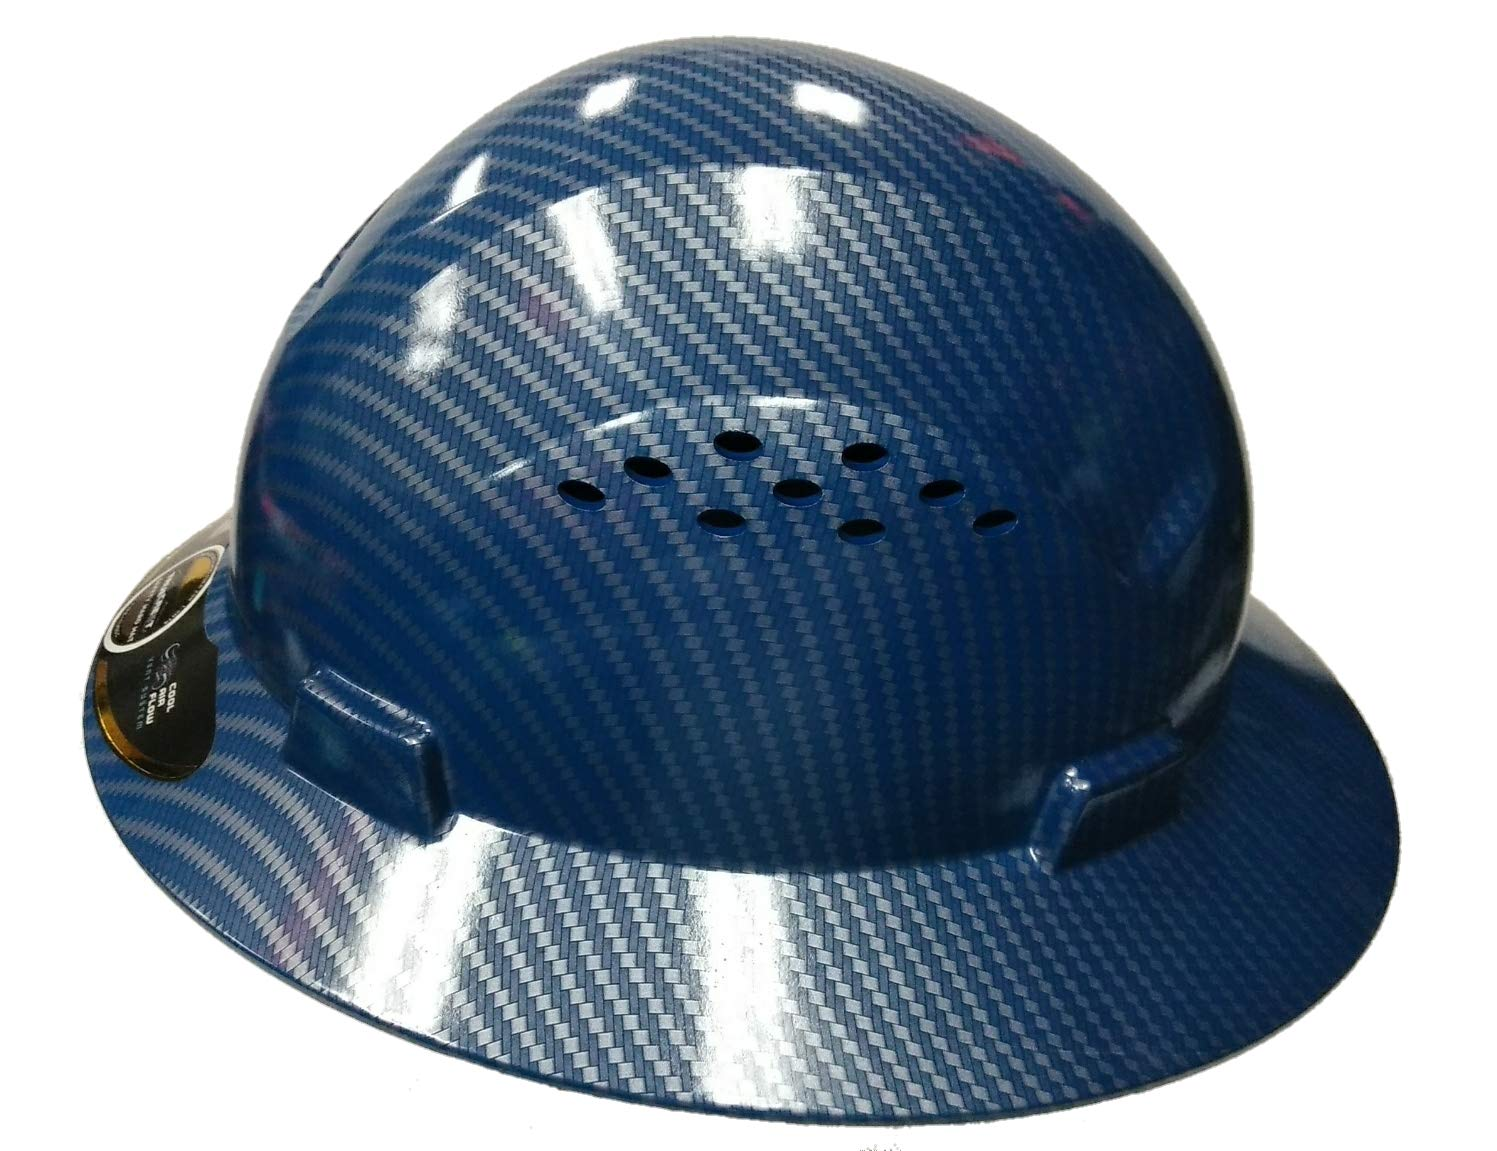 HDPE-Hydro Dipped Blue/Silver Full Brim Safety Hard Hat with Fas trac Suspension by TrueCrest Product